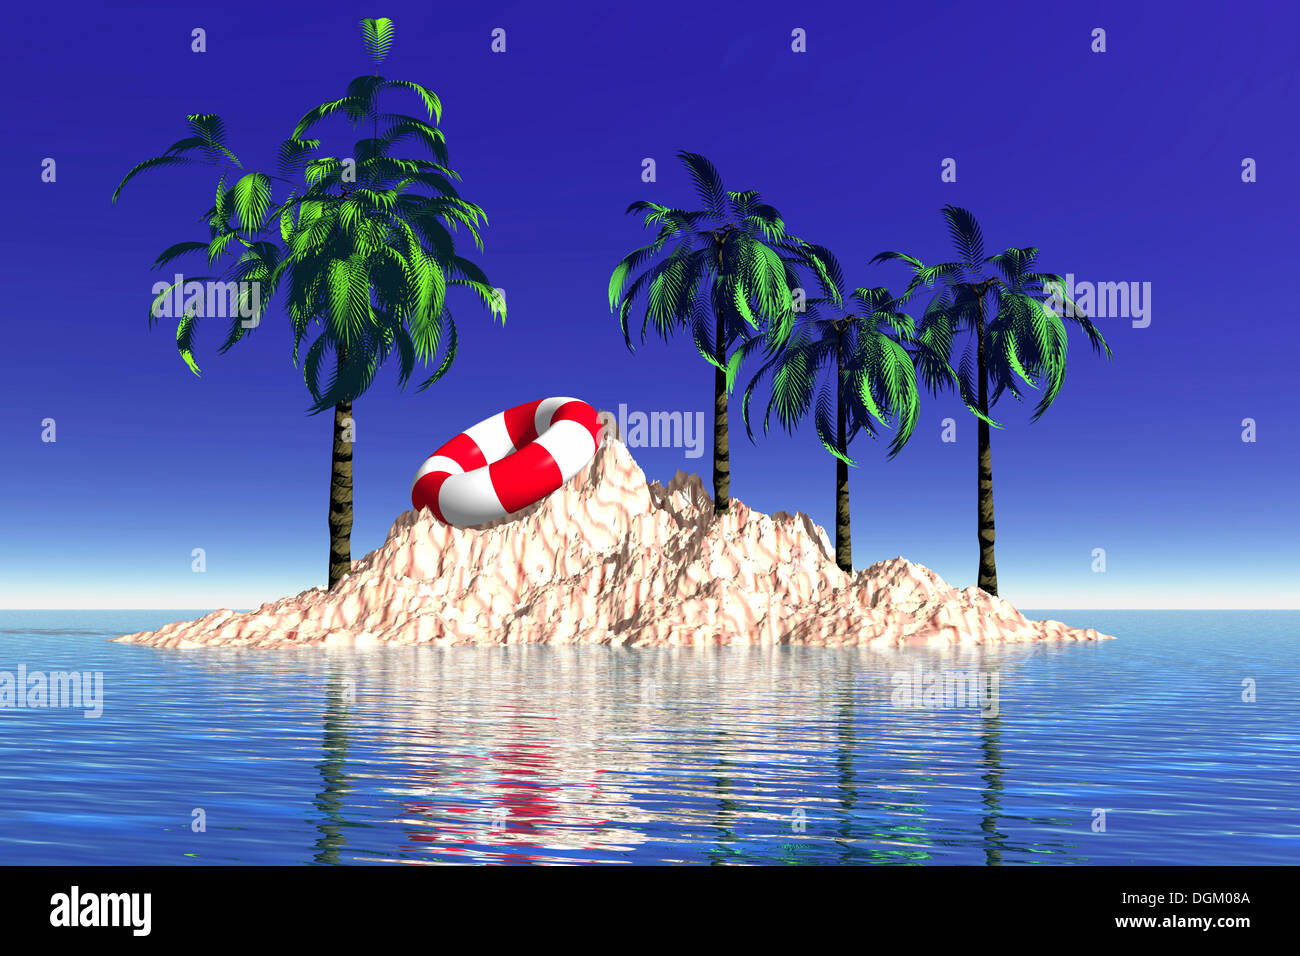 Island with palm trees and a life ring, 3D graphics - Stock Image